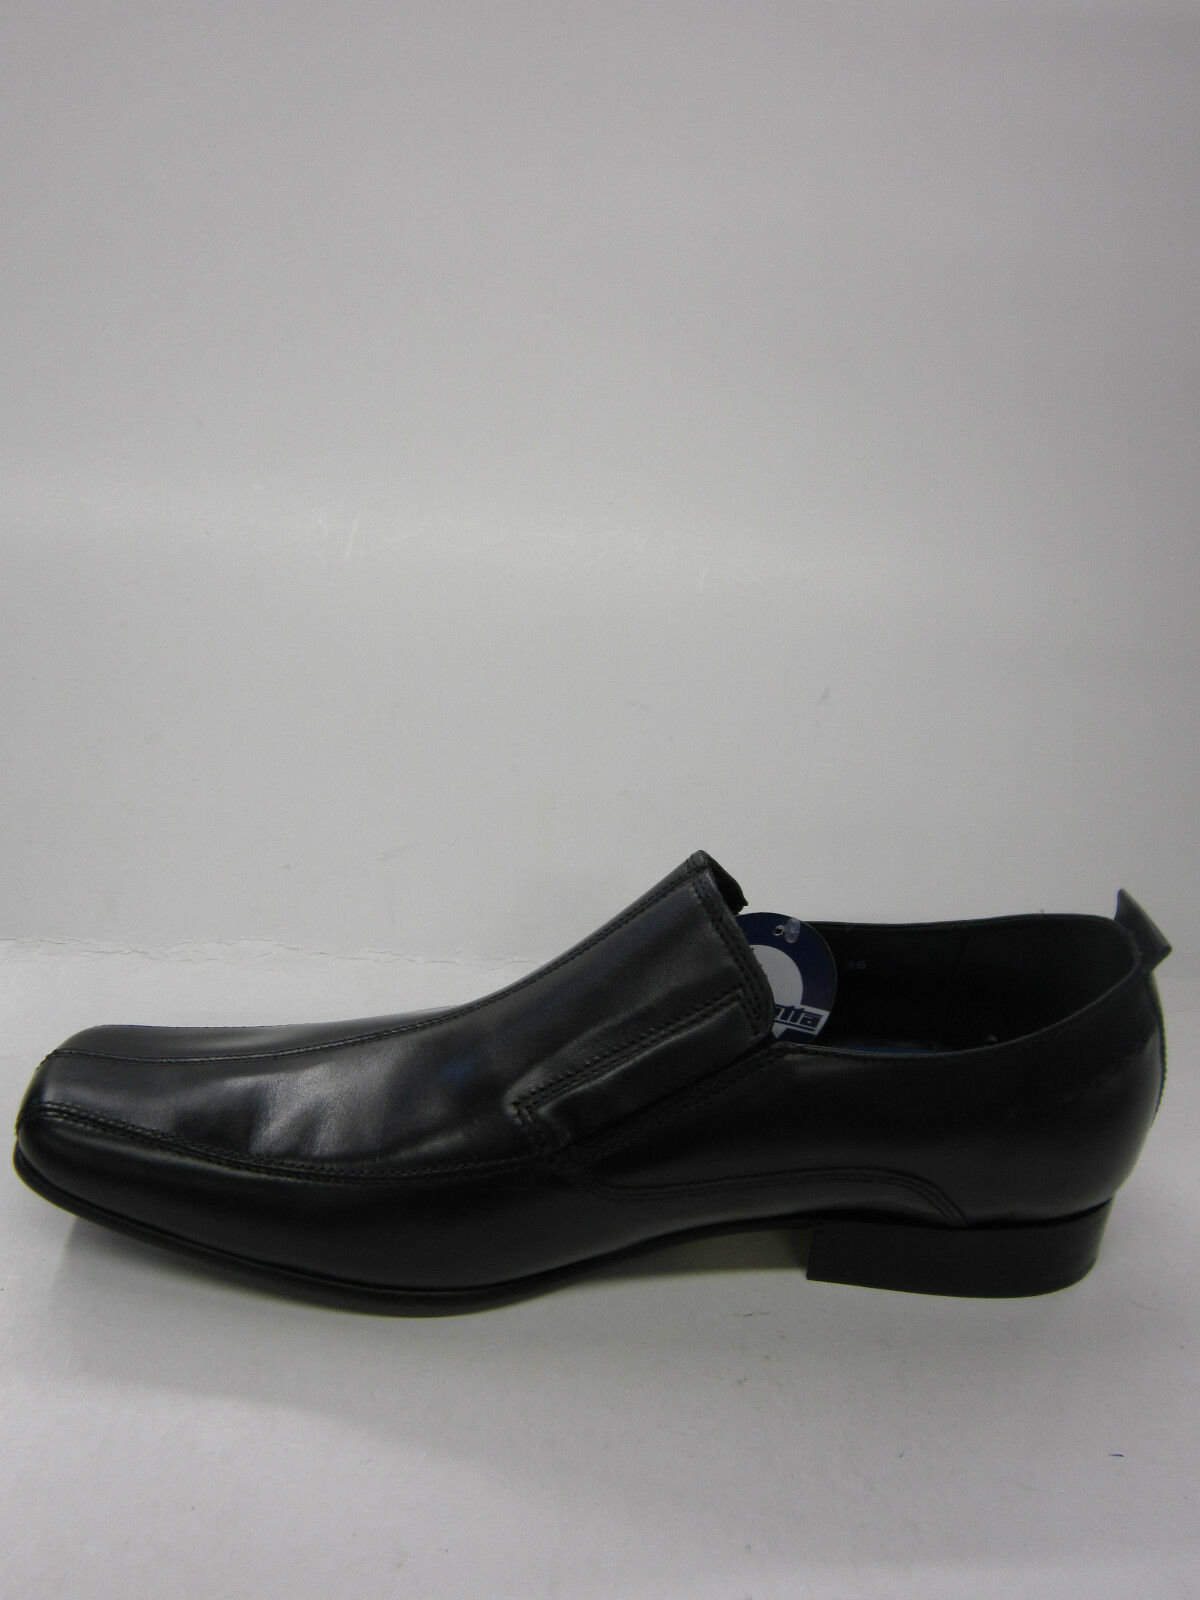 Herren LAMBRETTA CROWLEY LEATHER OFFICE SLIP ON FORMAL WEDDING OFFICE LEATHER WEAR Schuhe 80b52b